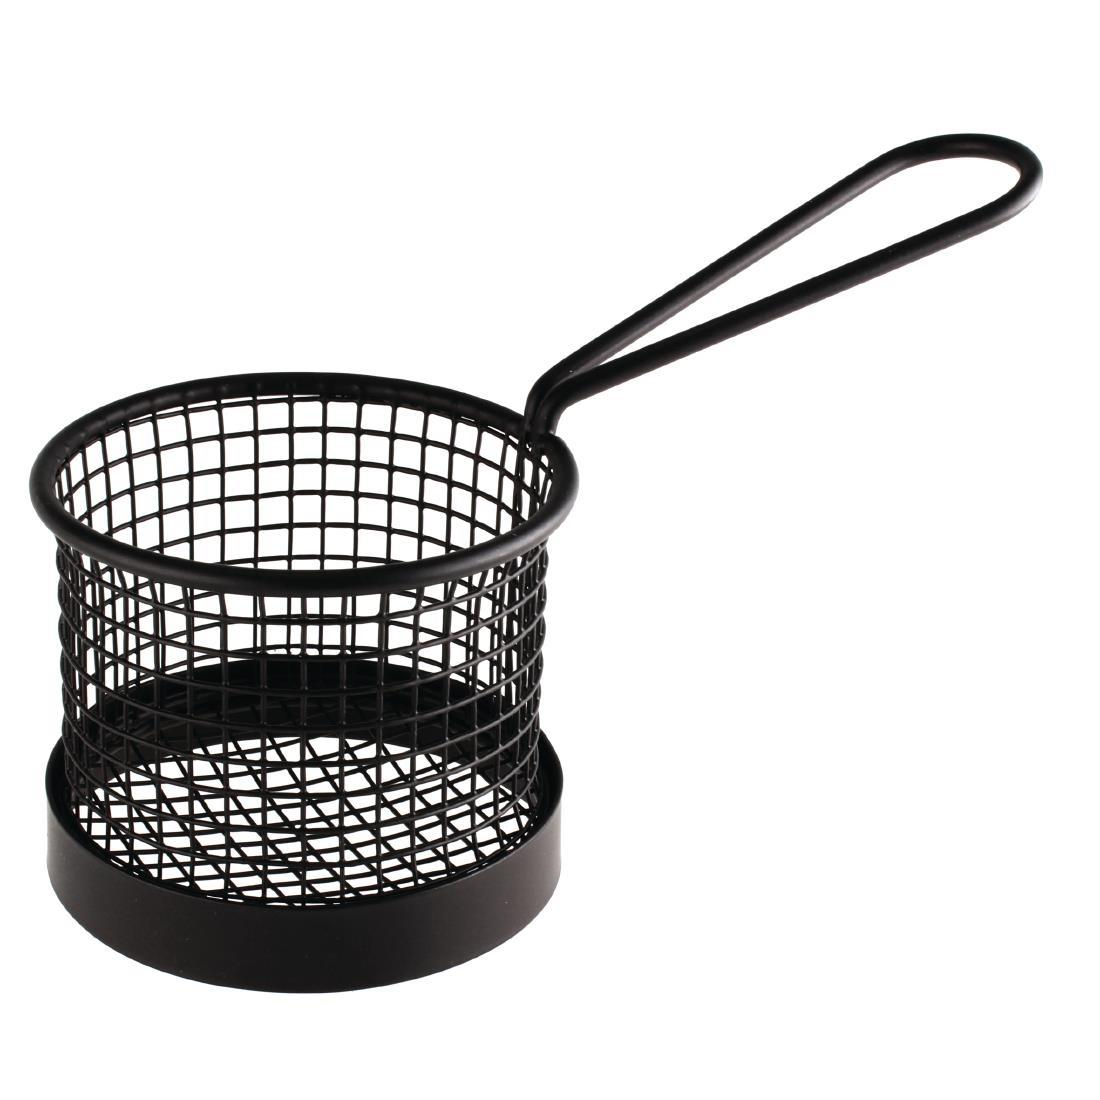 CS317 - Olympia Round Chip Presentation Basket With Handle Black - CS317